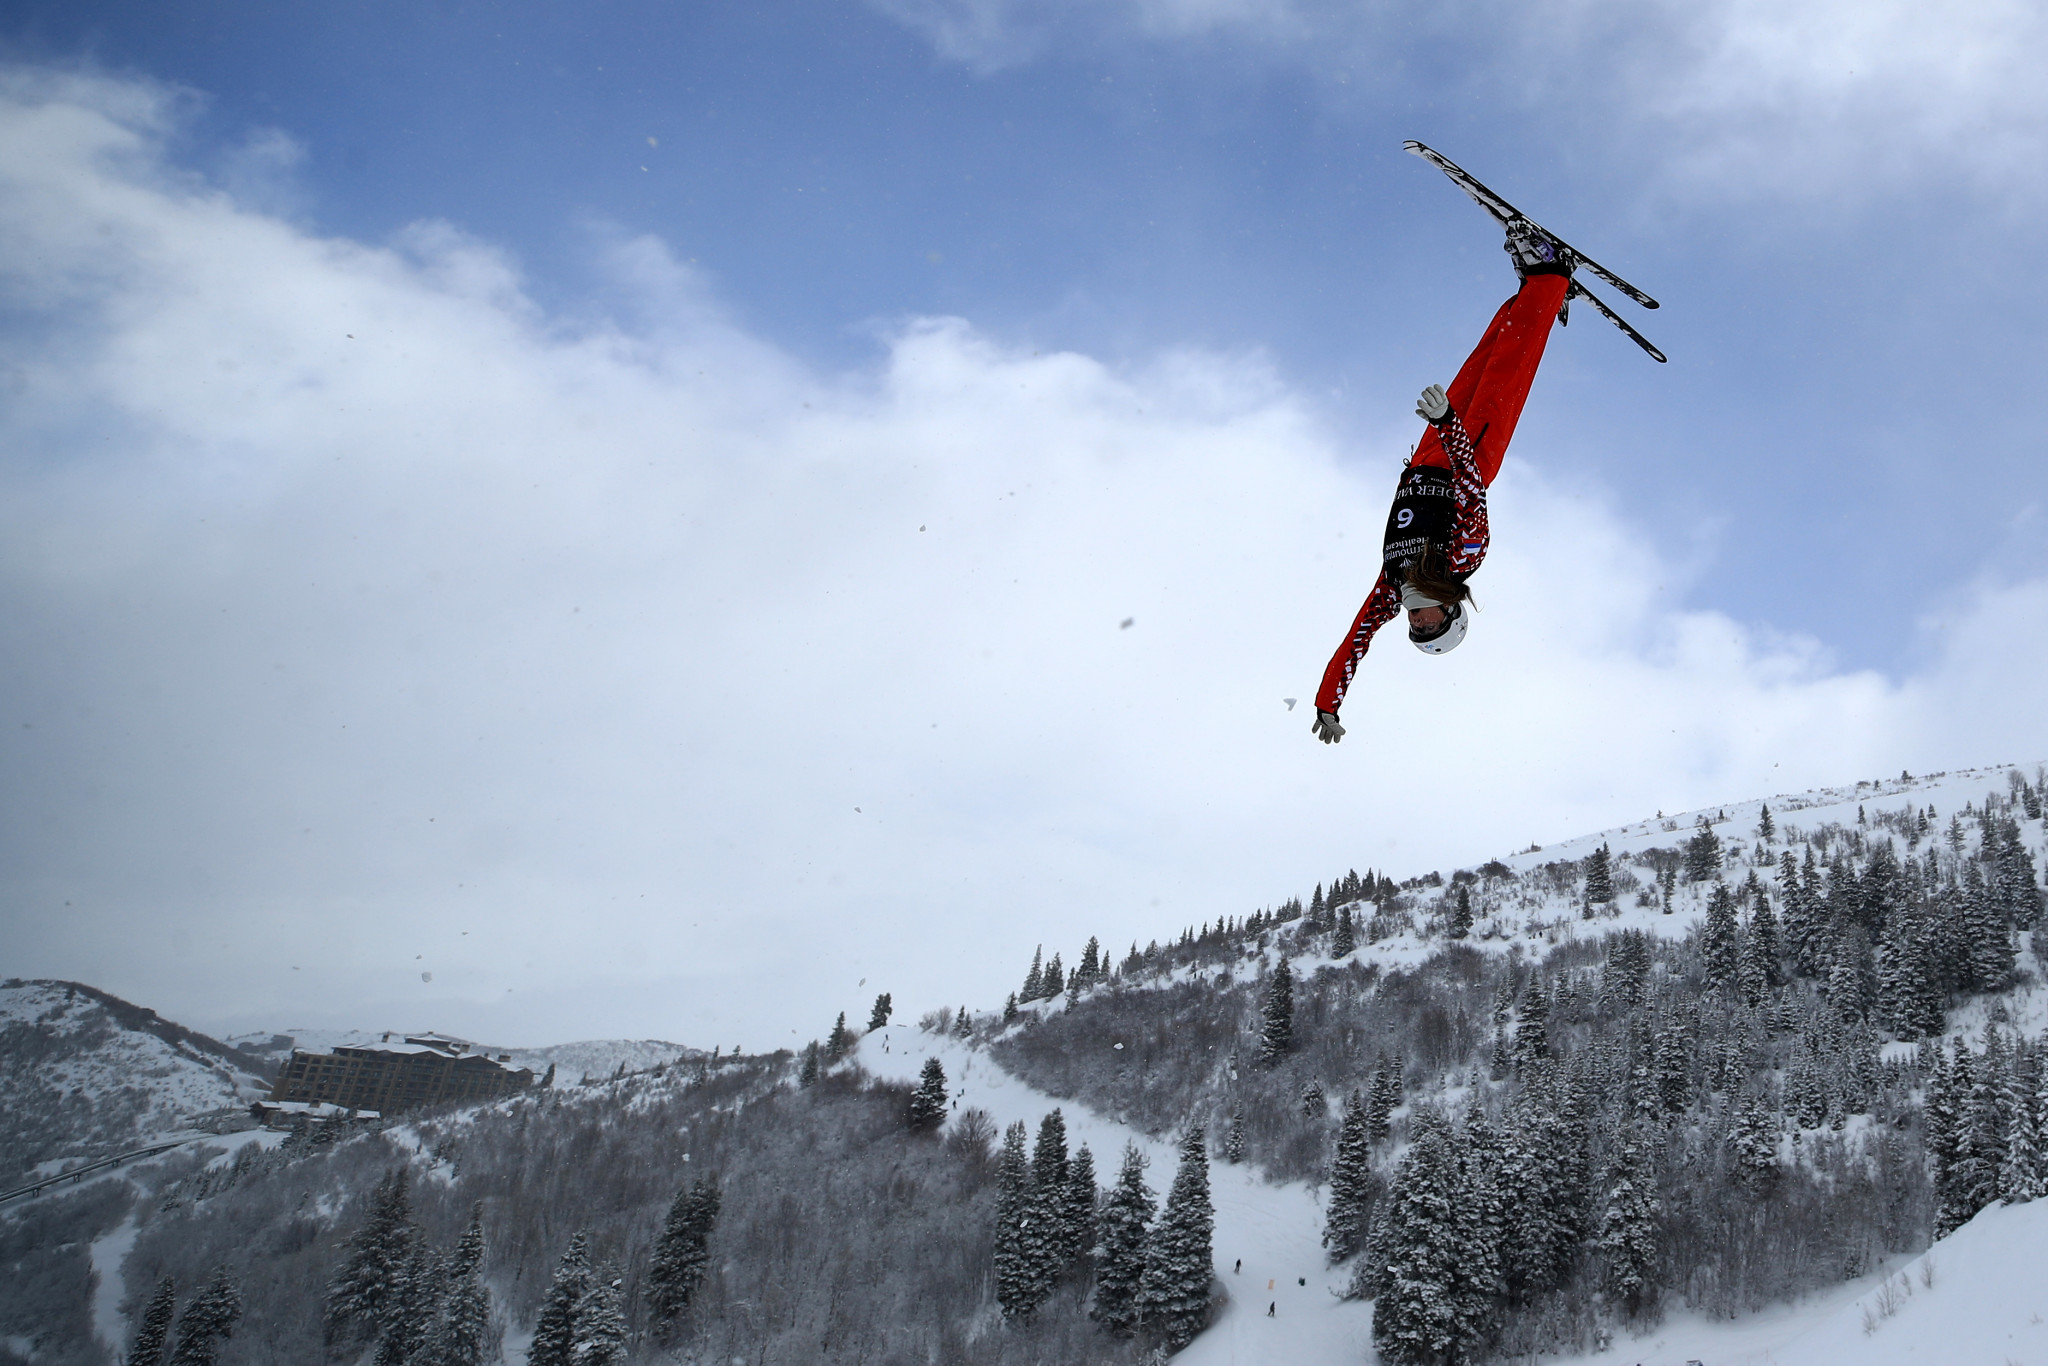 Deer Valley staged the FIS Freestyle Ski and Snowboarding World Championships - which included aerials and moguls - in 2019 ©Getty Images